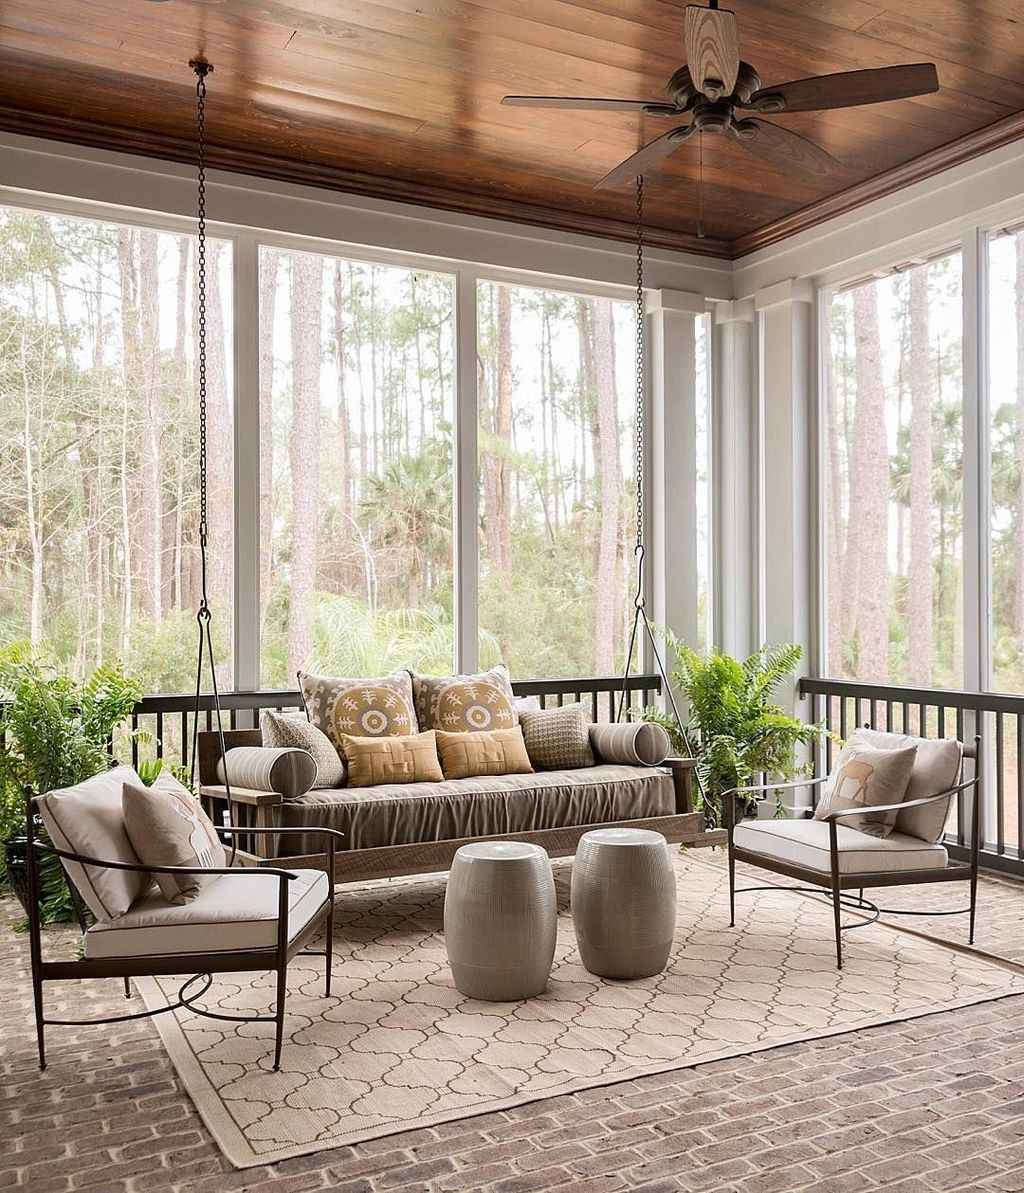 88 Gorgeous Farmhouse Screened In Porch Design Ideas for Relaxing